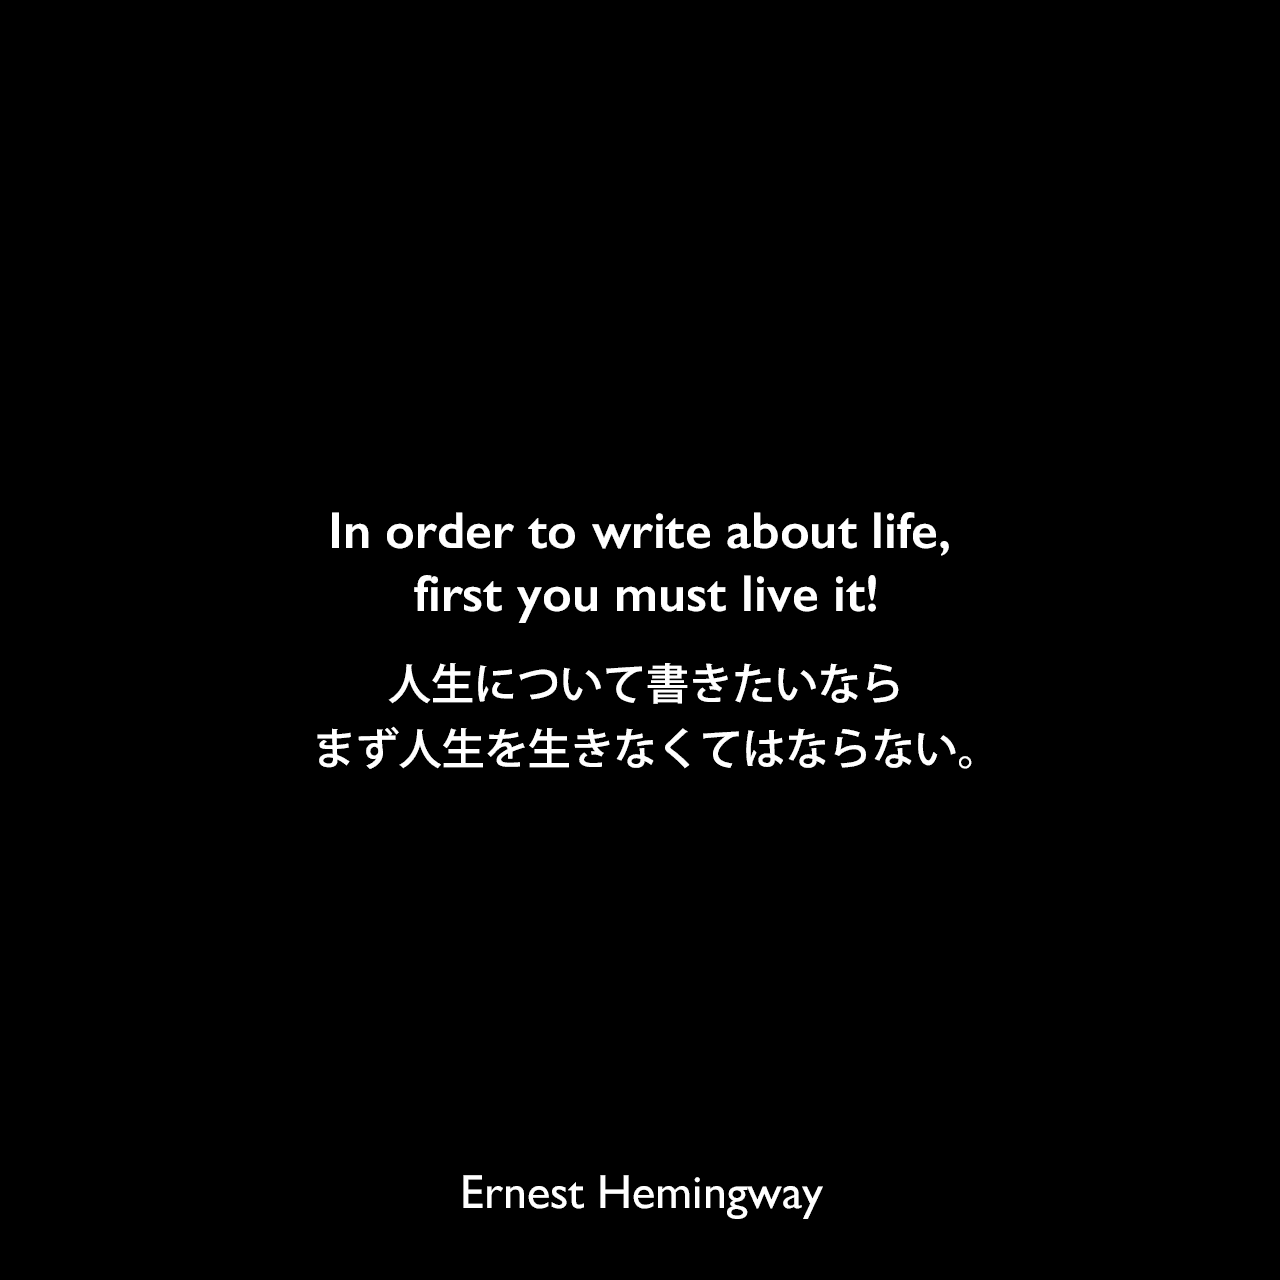 In order to write about life, first you must live it!人生について書きたいなら、まず人生を生きなくてはならない。Ernest Hemingway